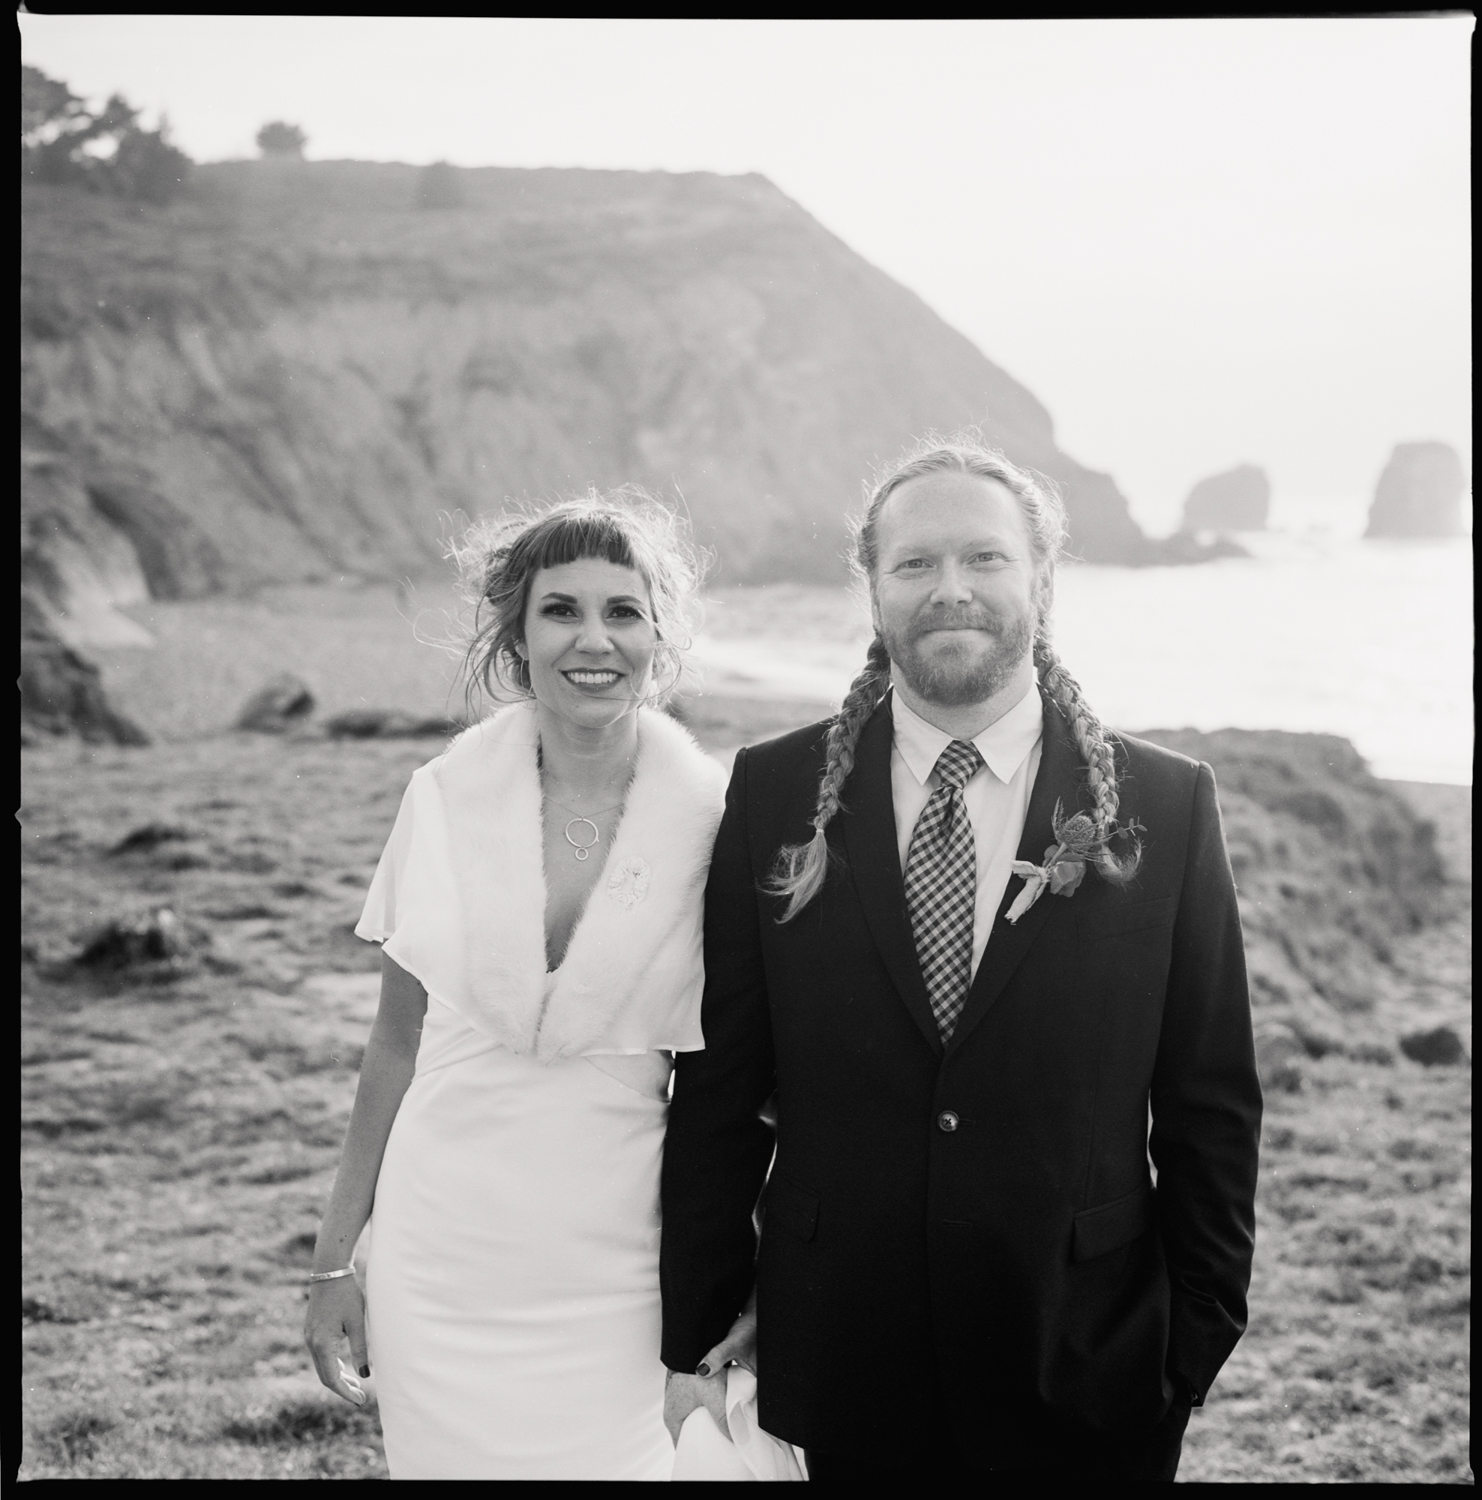 Pacifica_Beach_Surfer_Wedding_128.jpg